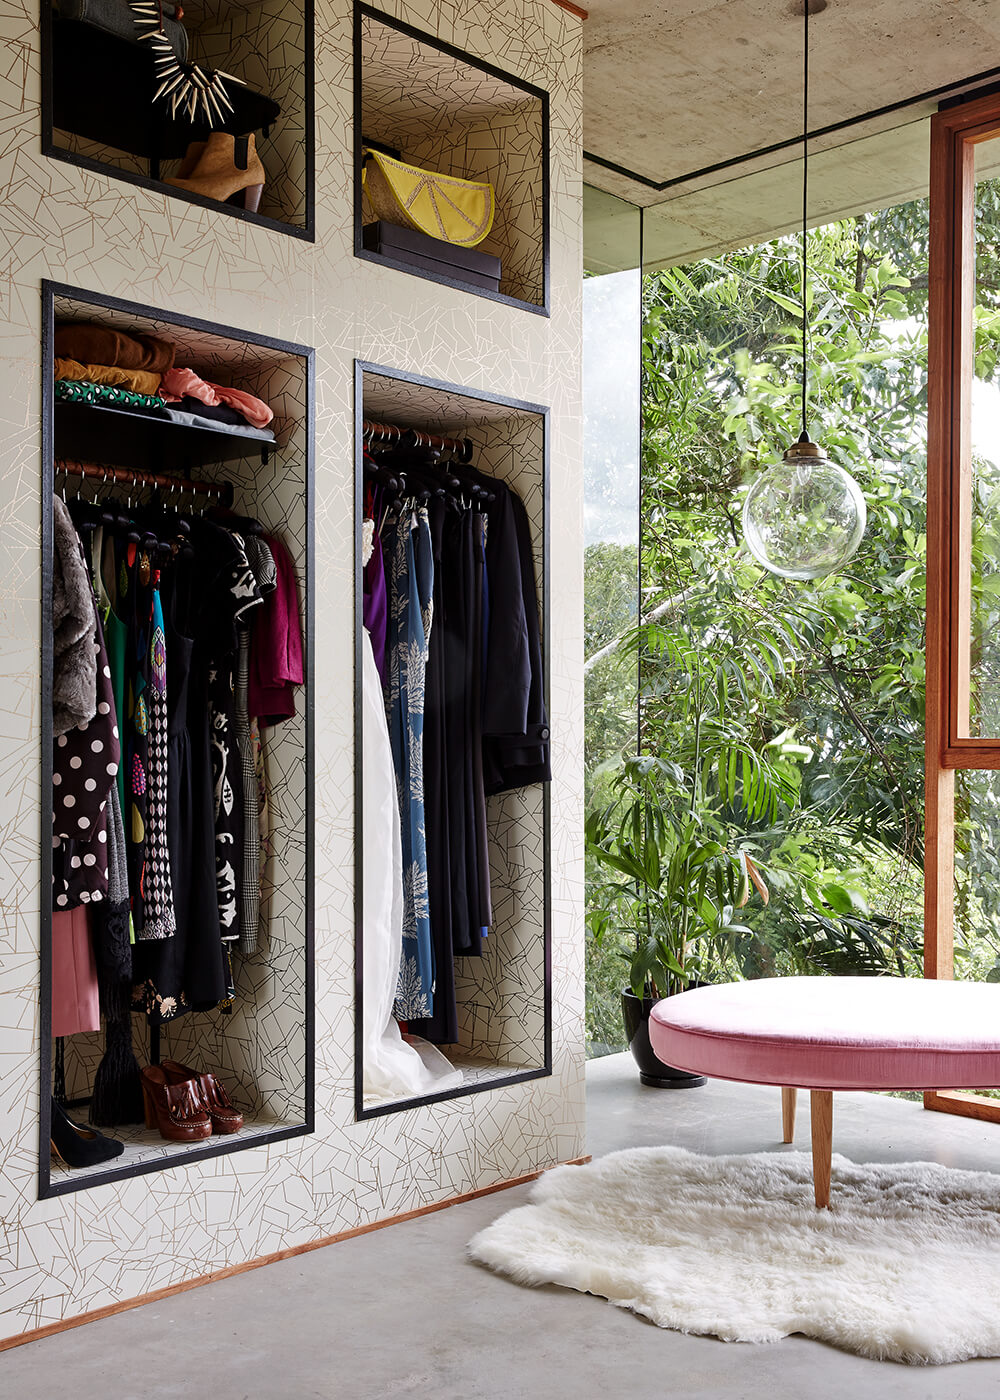 The closet room features a single bear skin rug on the floor, plus textured wall shelving for a kitschy, fun look.